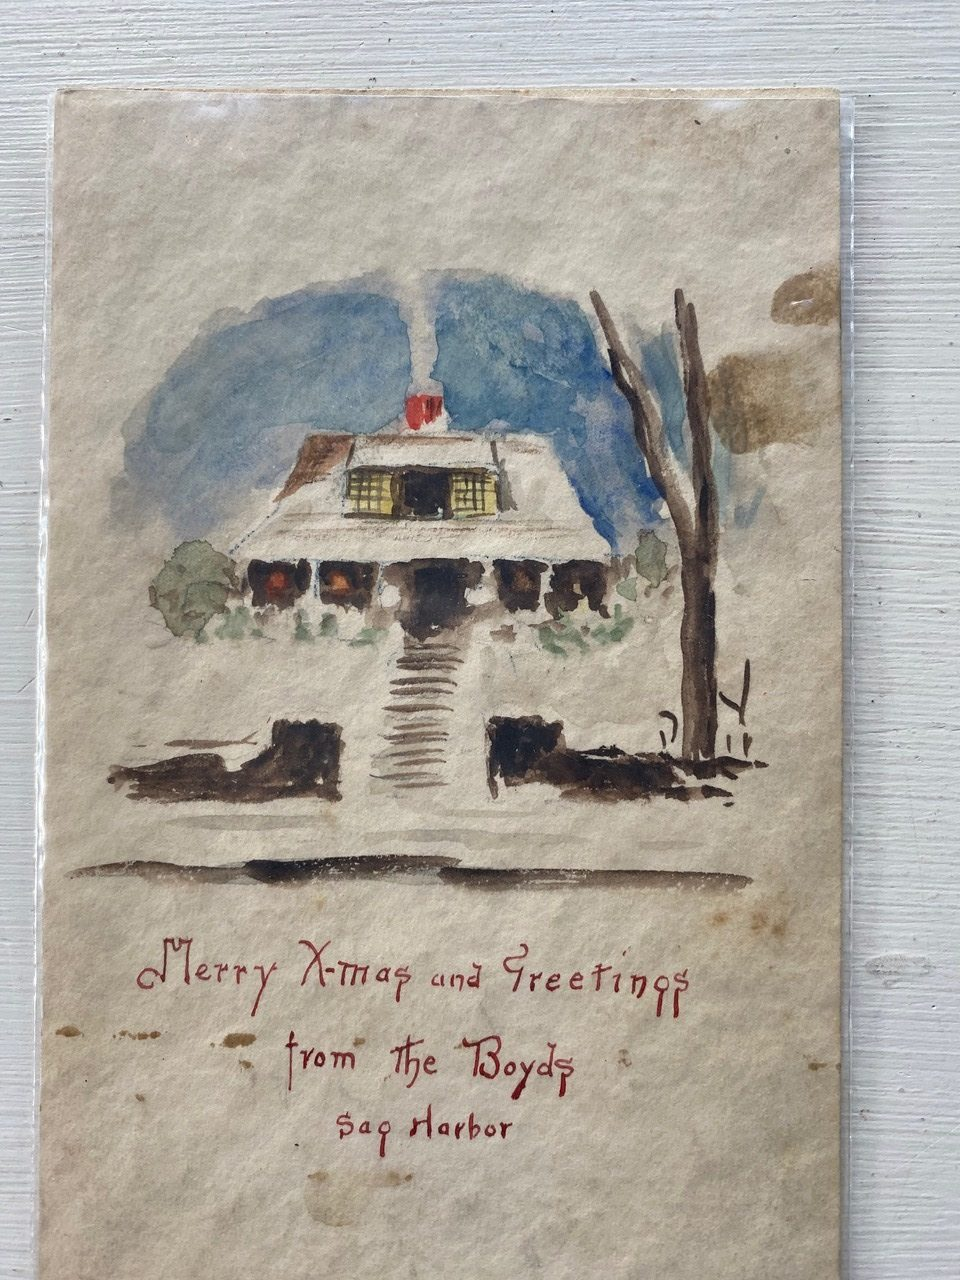 An undated Christmas card painted by Annie Cooper Boyd. COURTESY SAG HARBOR HISTORICAL SOCIETY